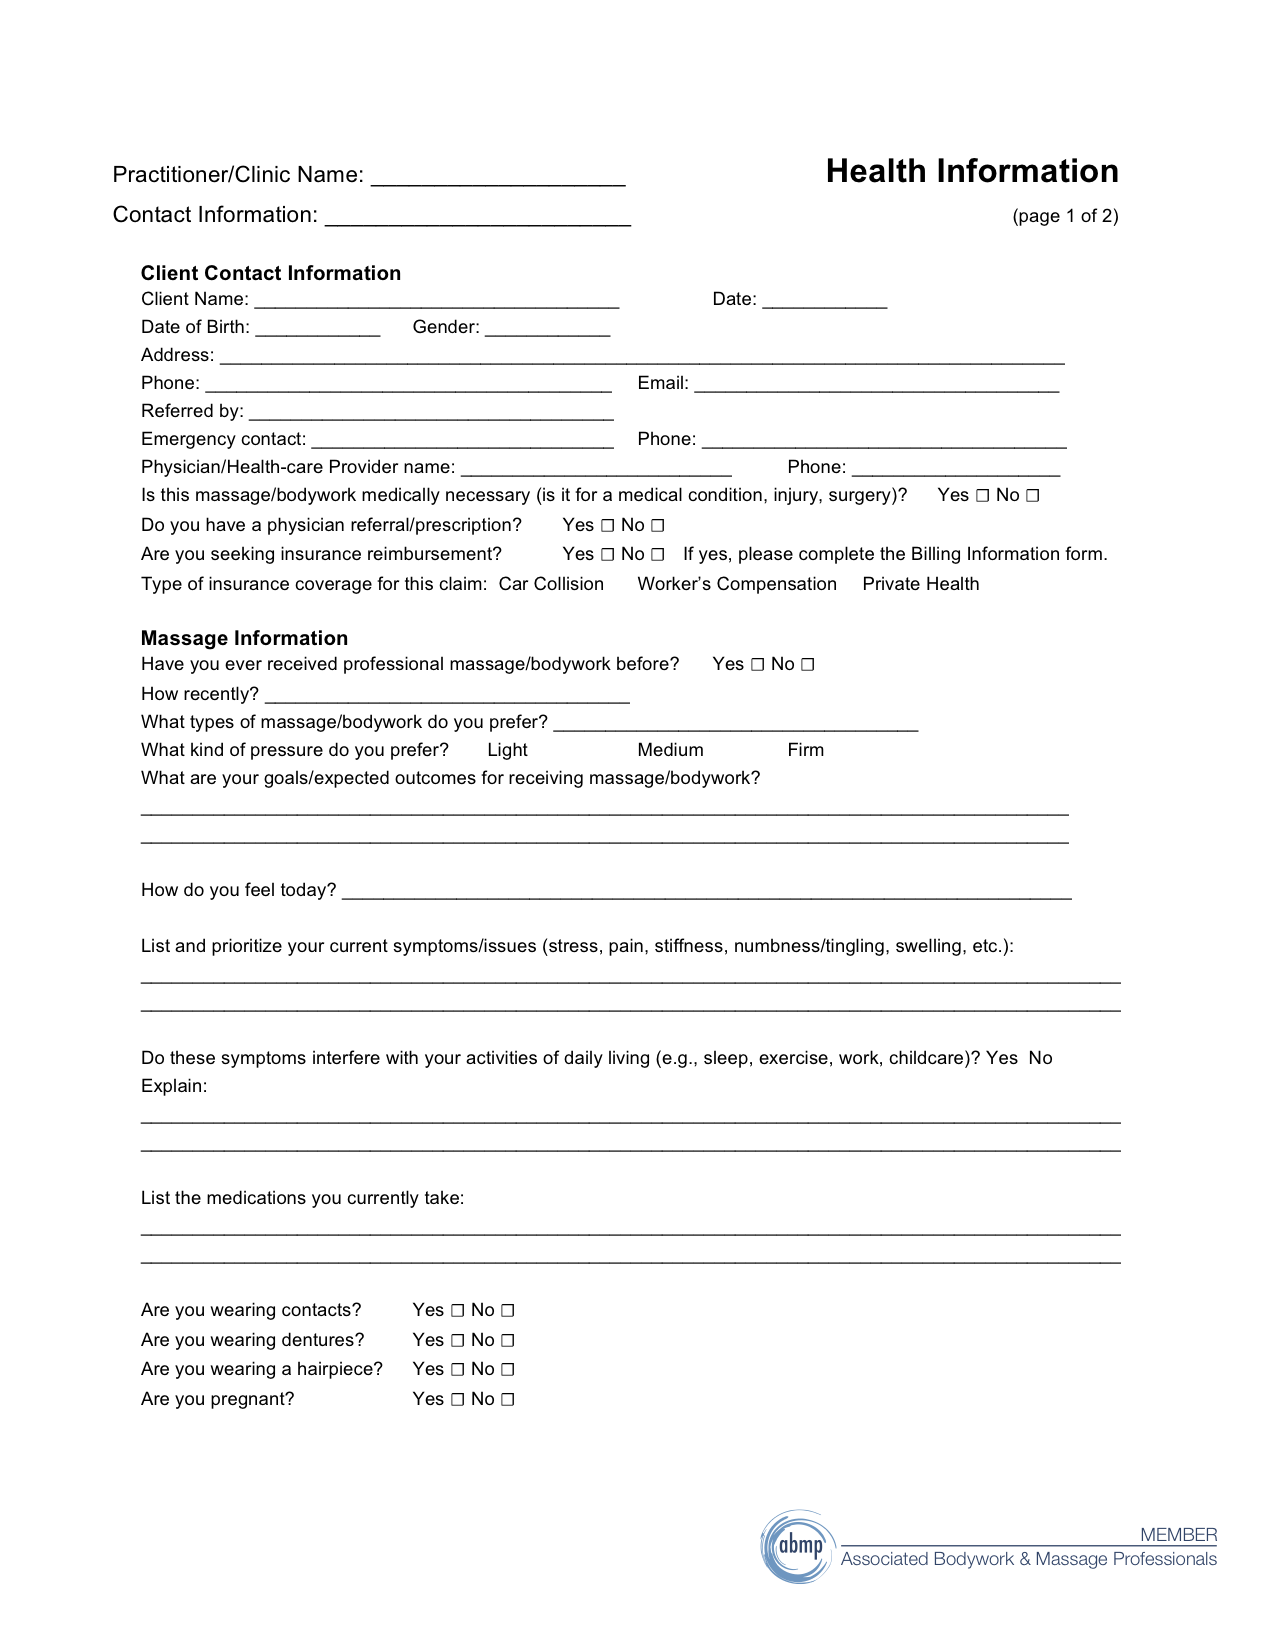 customer information form template – Customer Contact Information Form